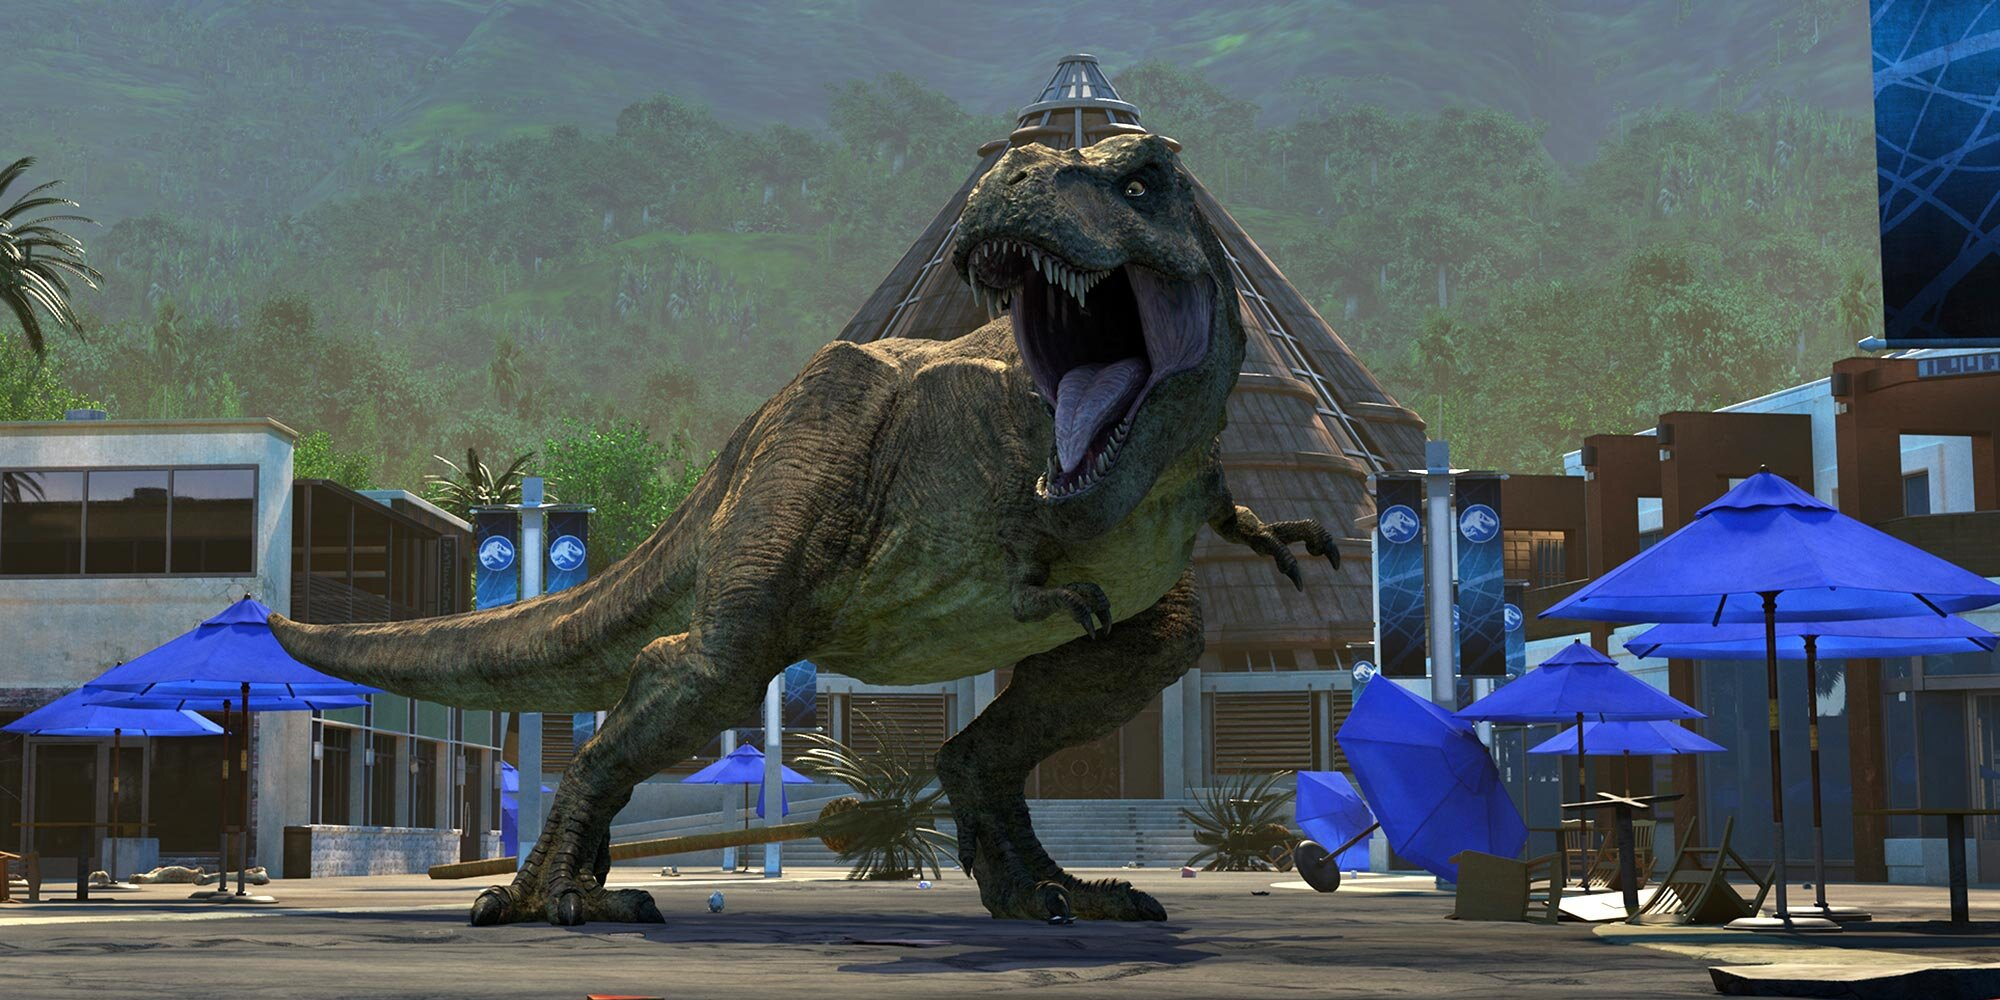 'Jurassic World: Dominion' will 'connect to discoveries made' in 'Camp Cretaceous' - Entertainment Weekly